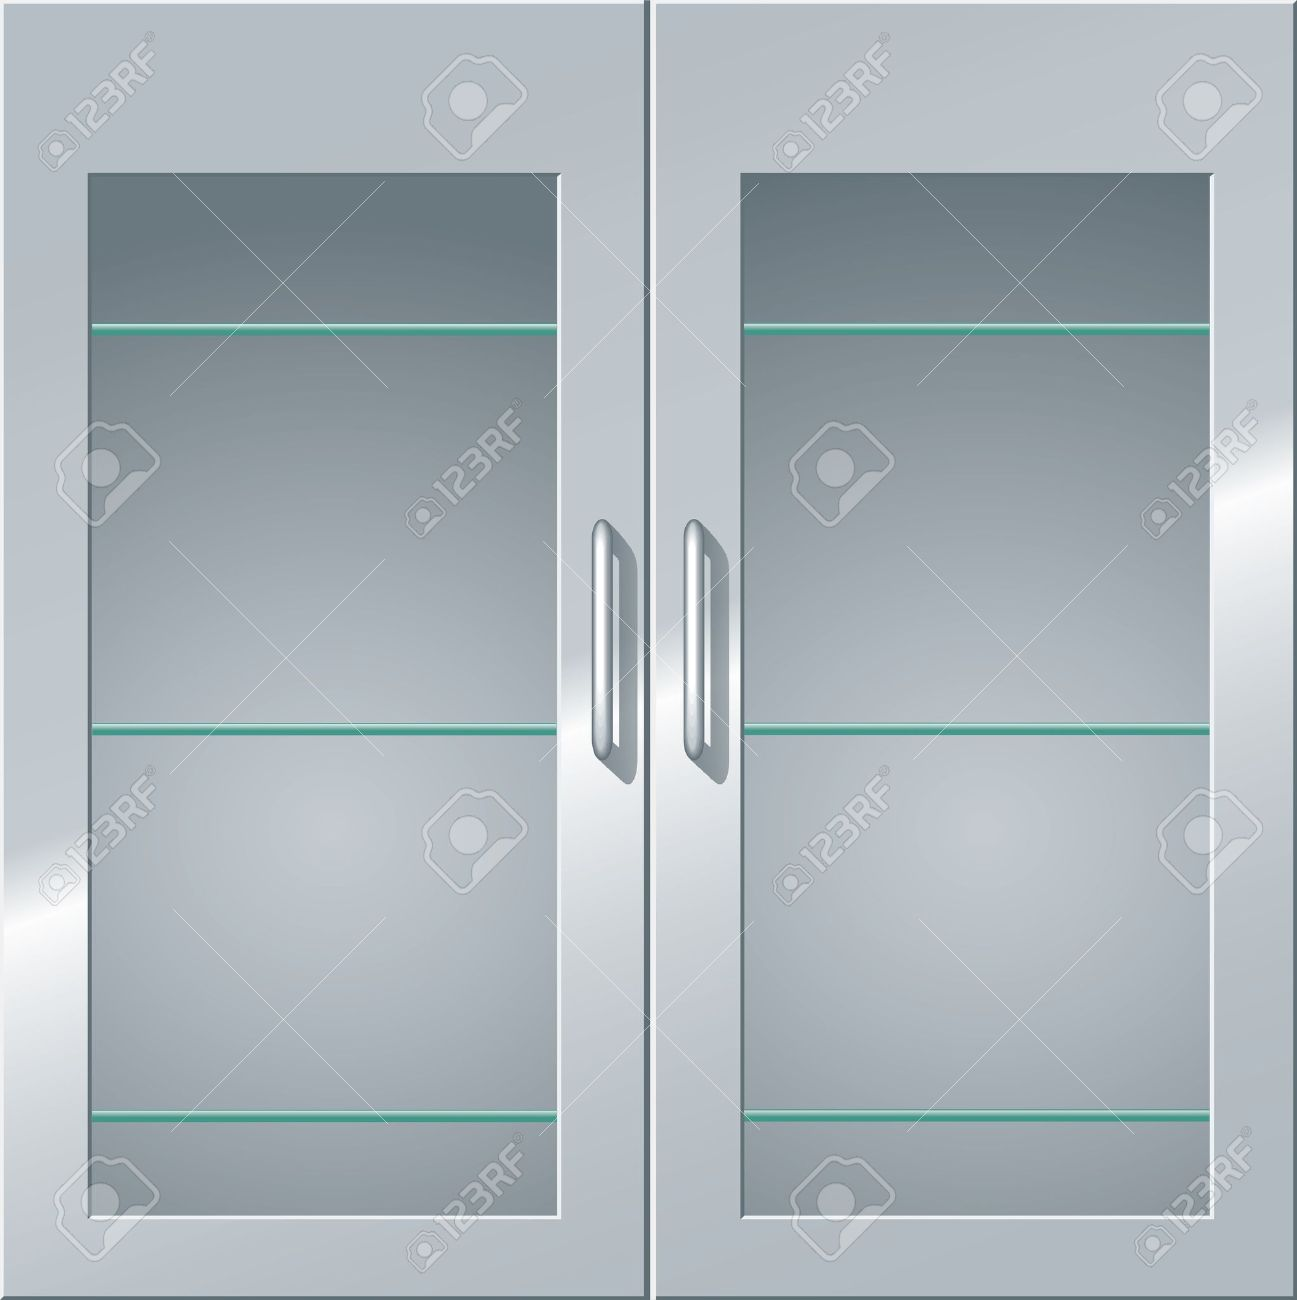 front view of a metal cabinet with glass doors and shelves stock vector